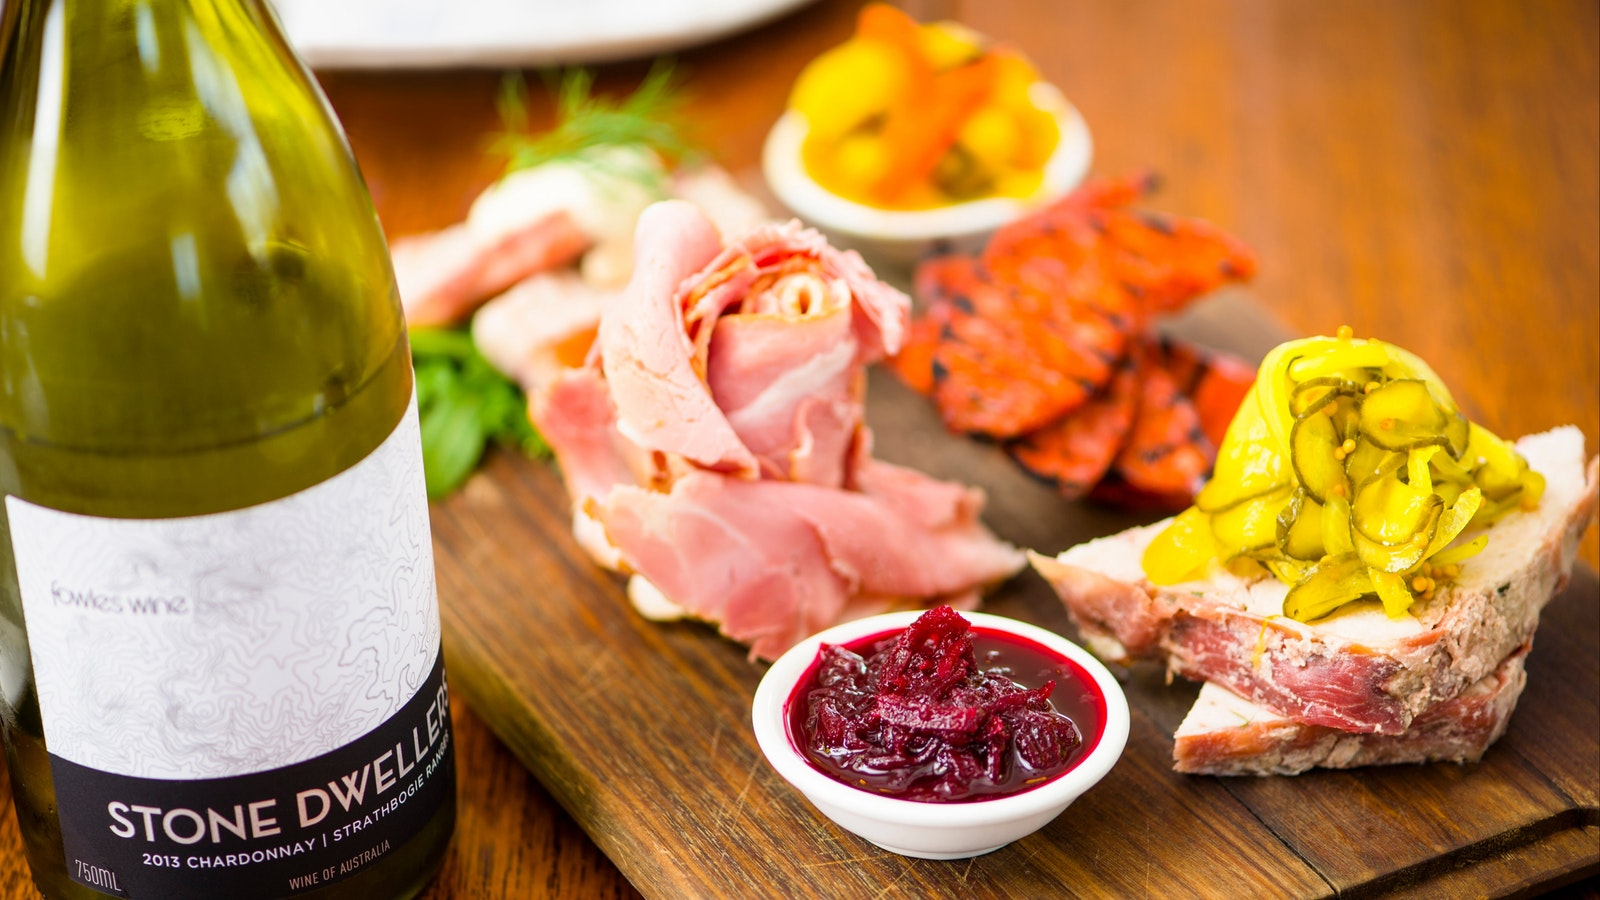 Local Charcuterie and Stone Dwellers Chardonnay